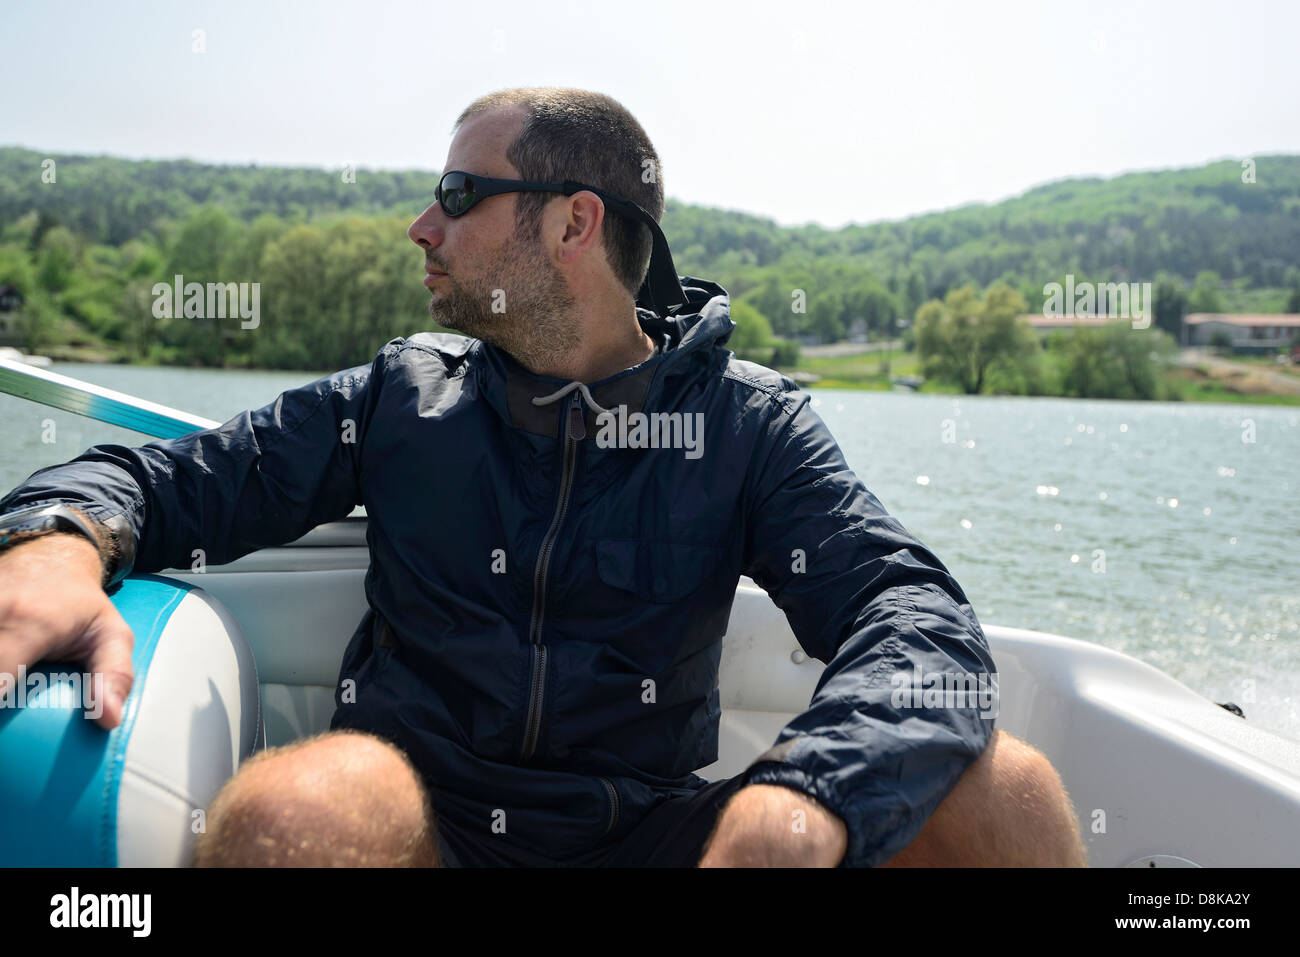 Man in a motorboat speeding away along the shore, looking ahead - Stock Image